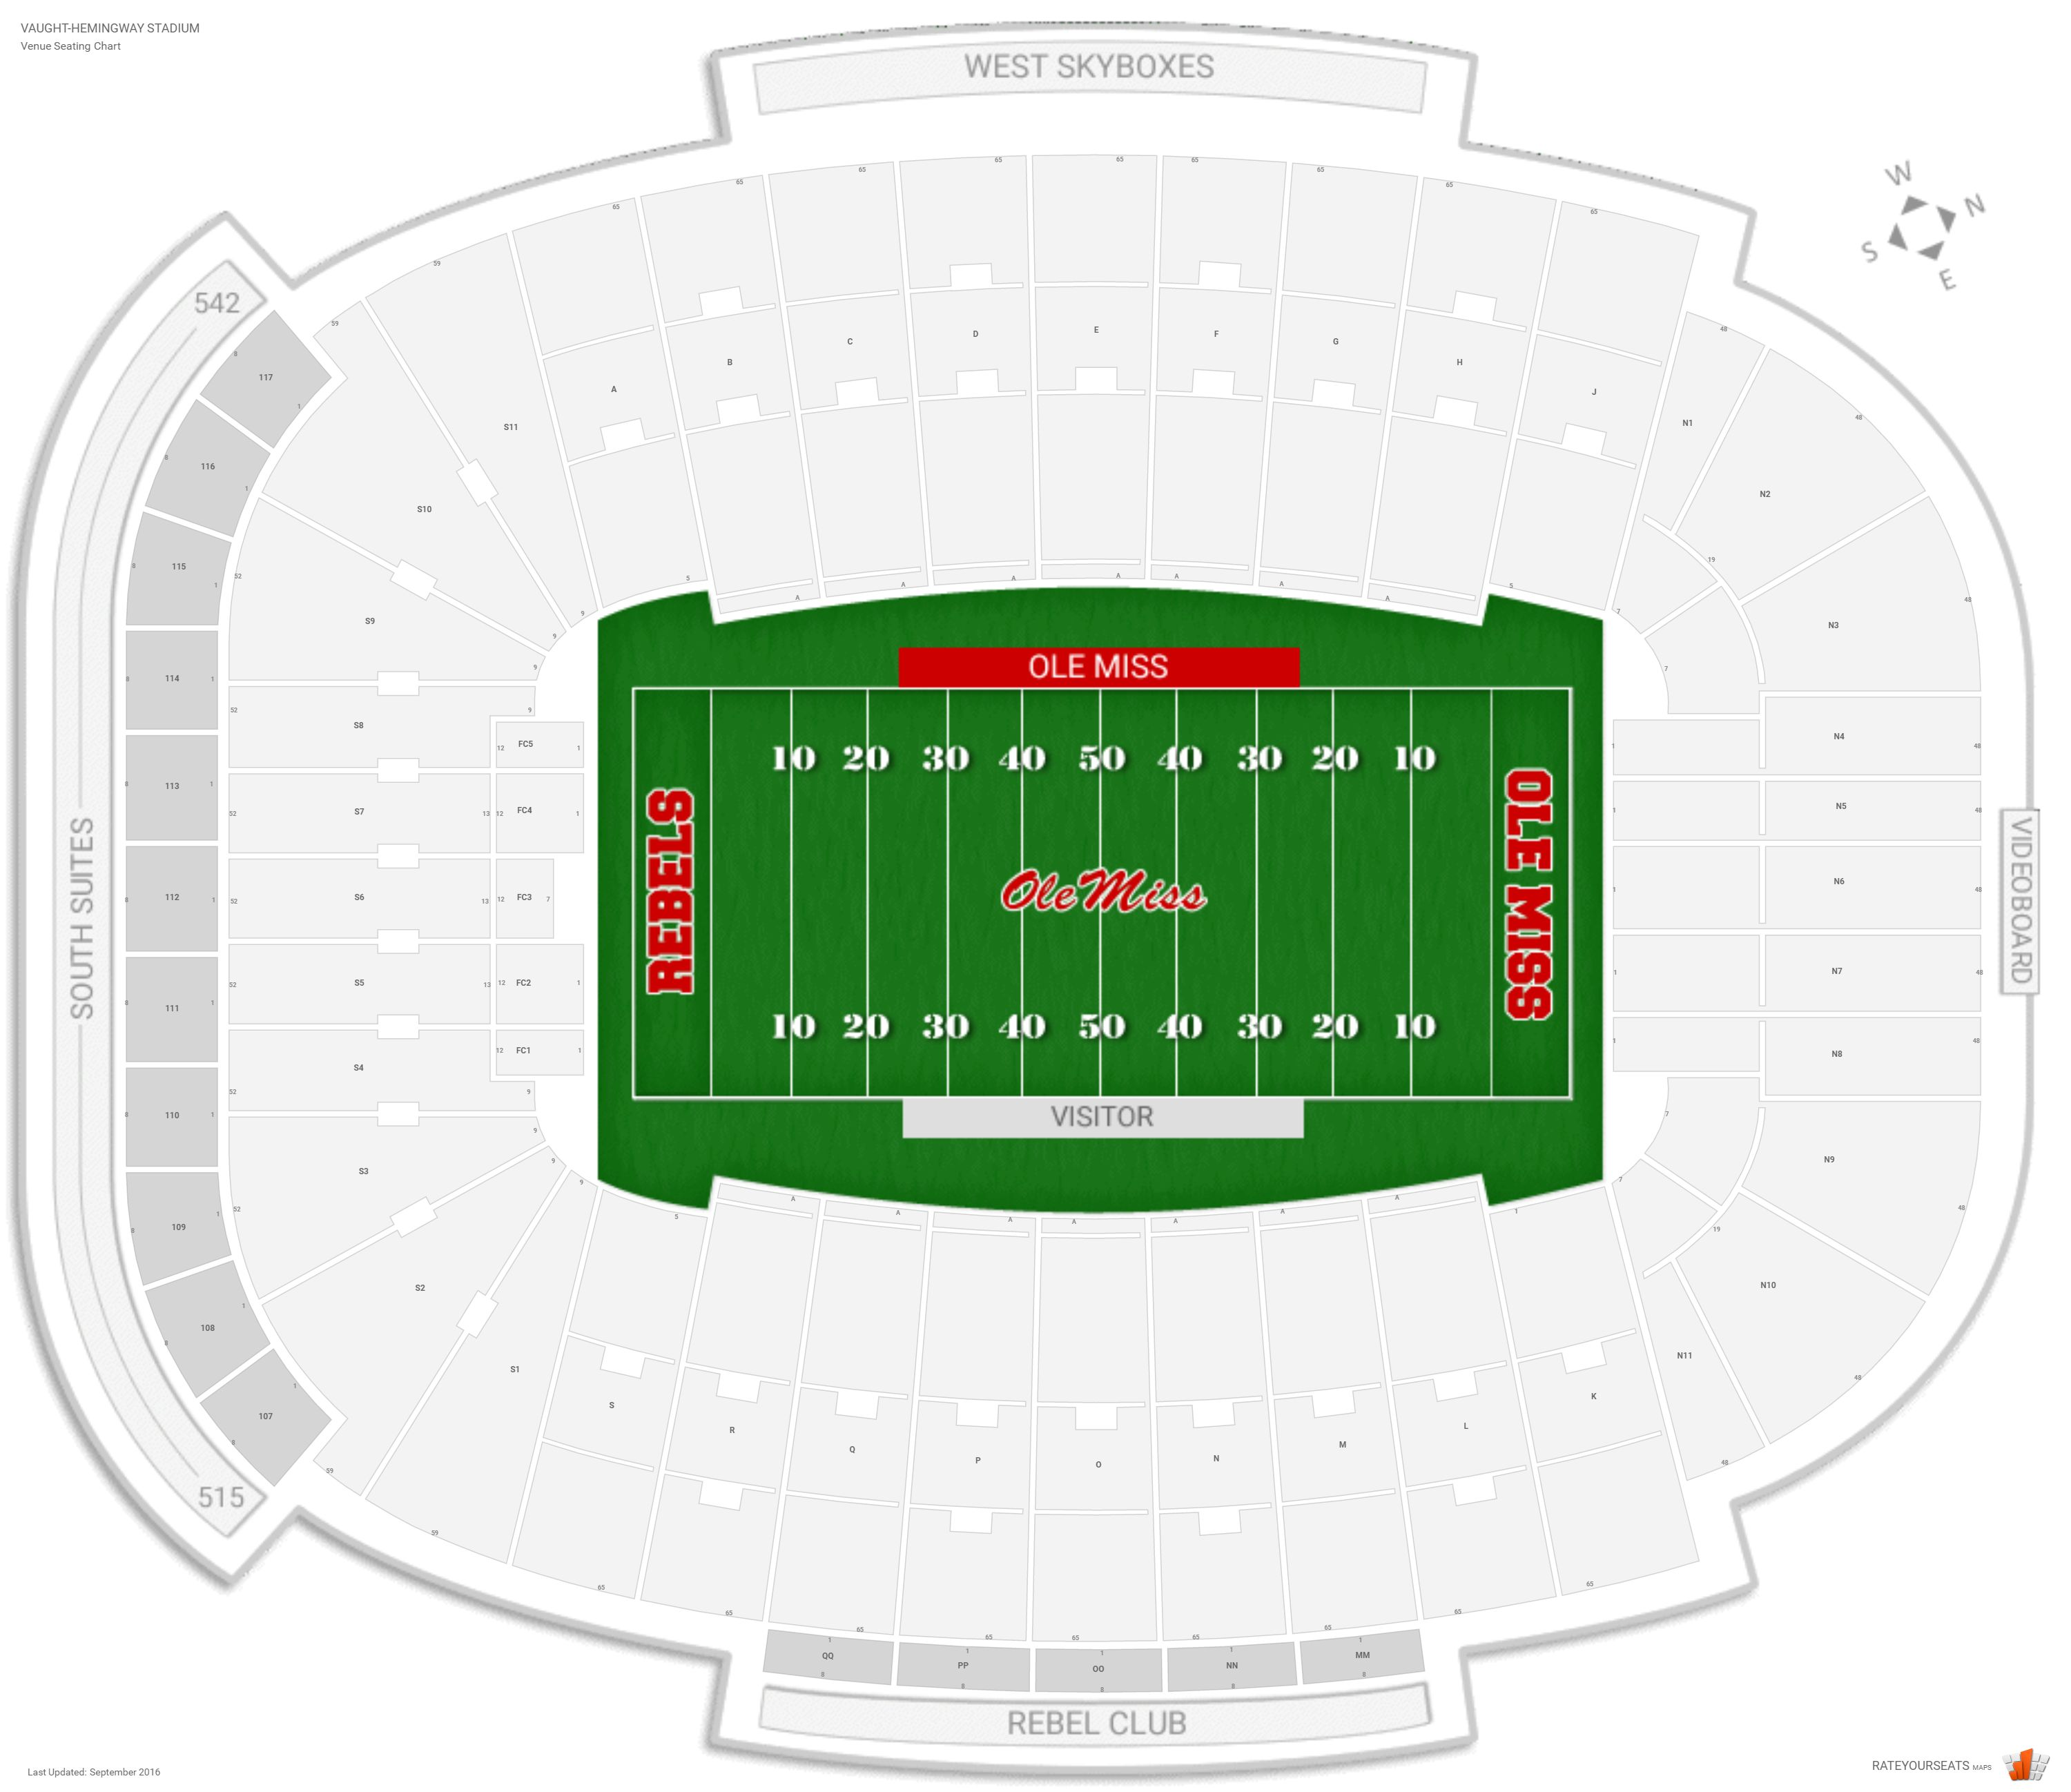 Vaught hemingway stadium ole miss seating guide rateyourseats com